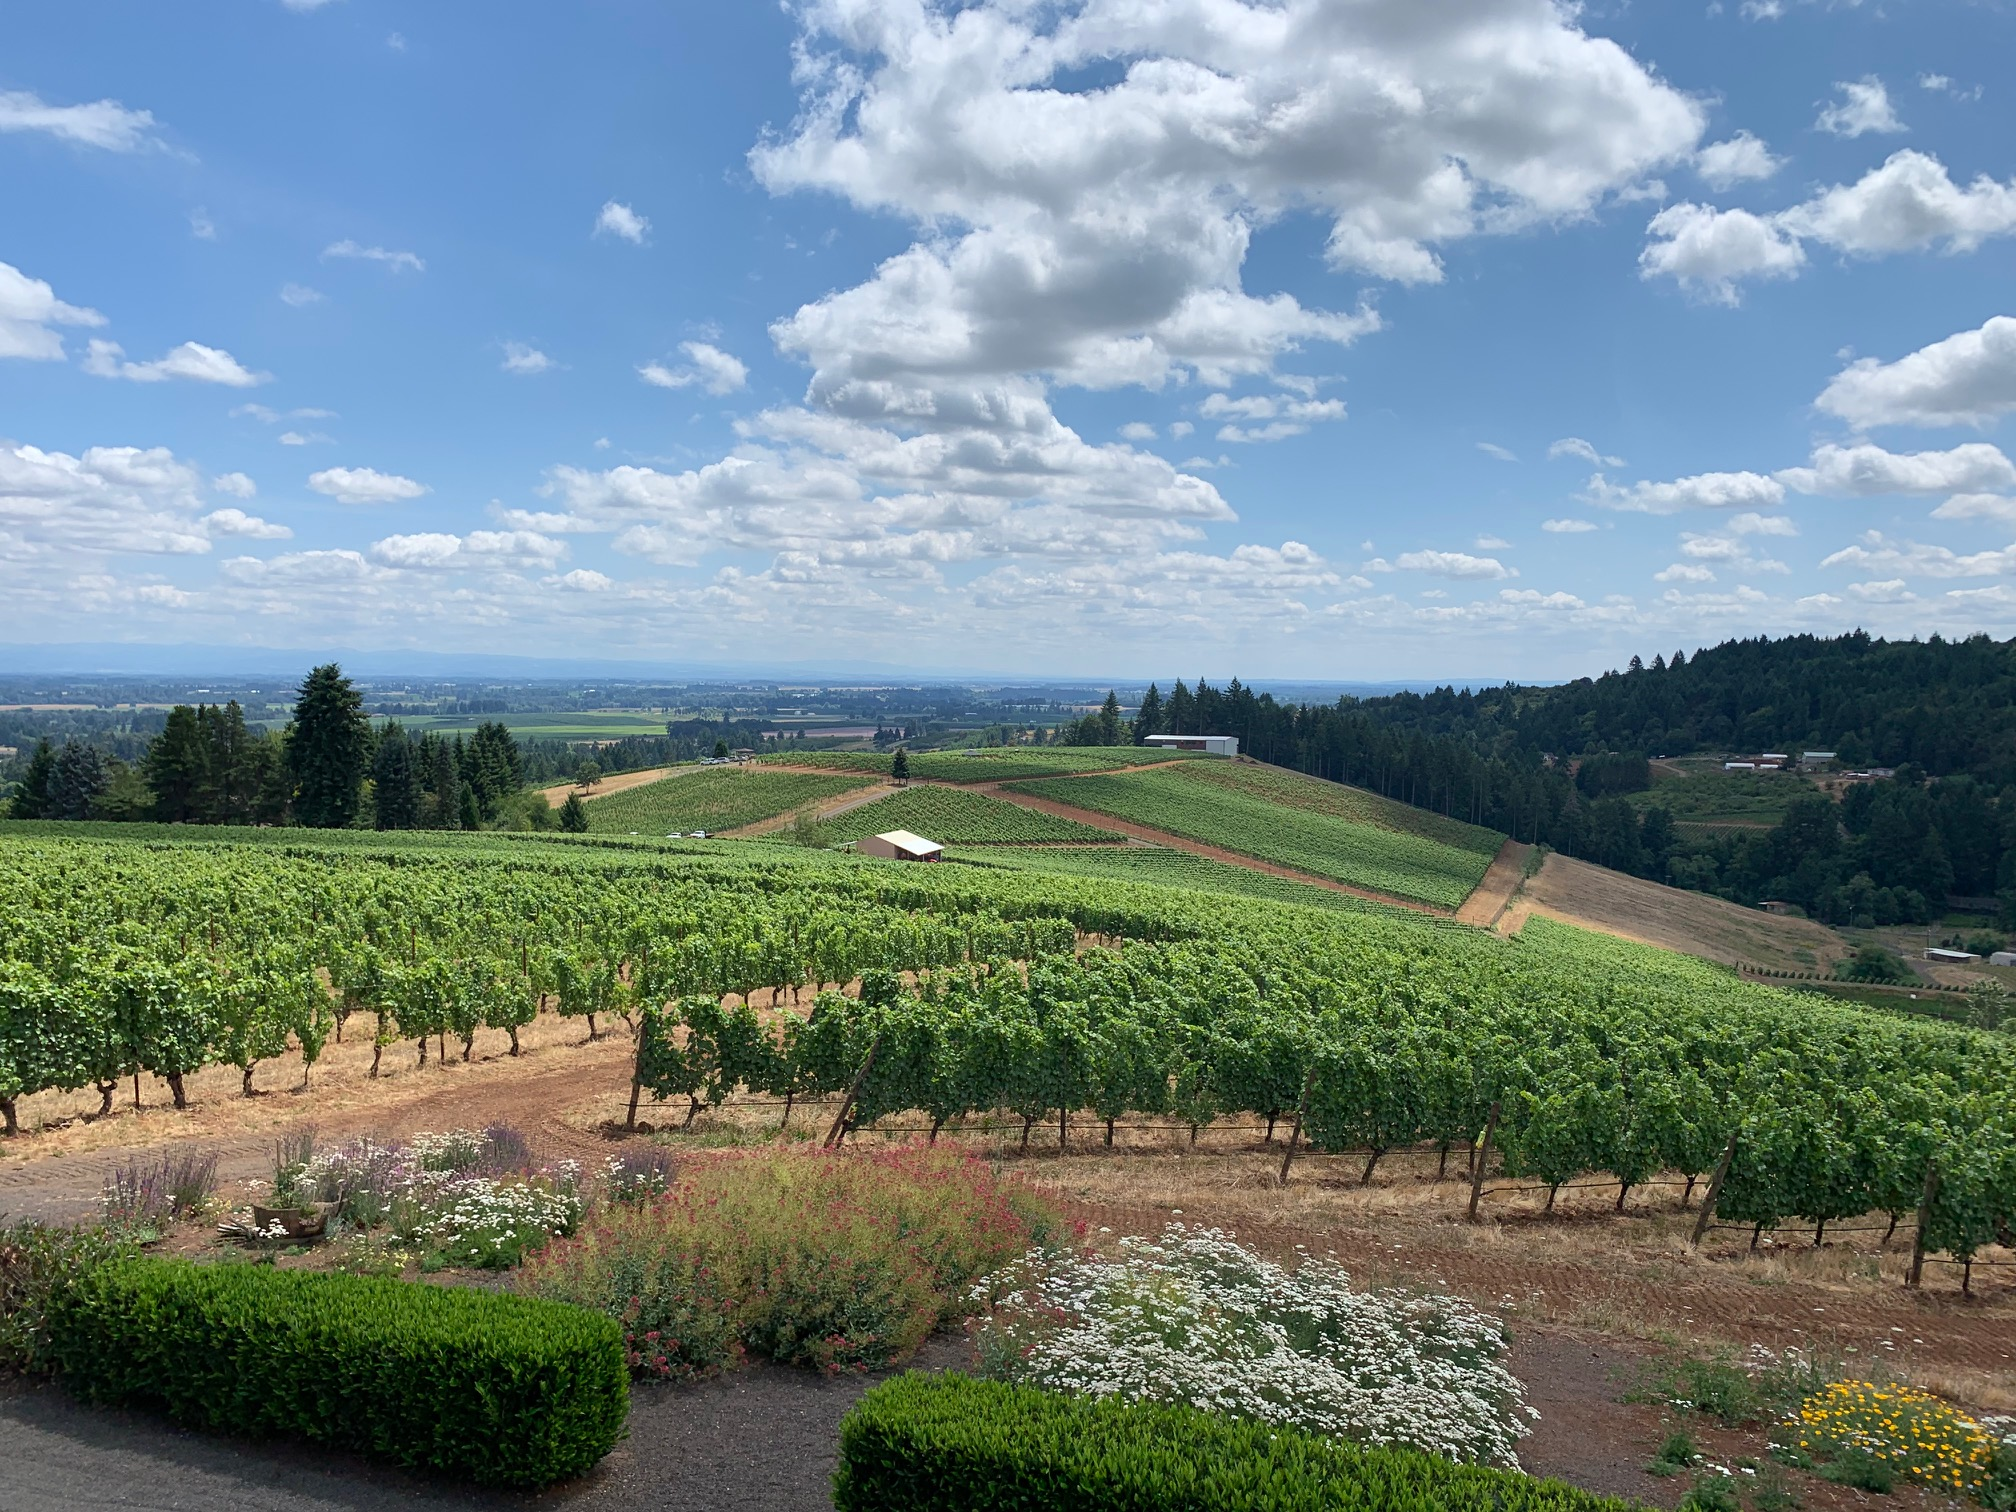 Winderlea: where the views and the wine are equally delightful